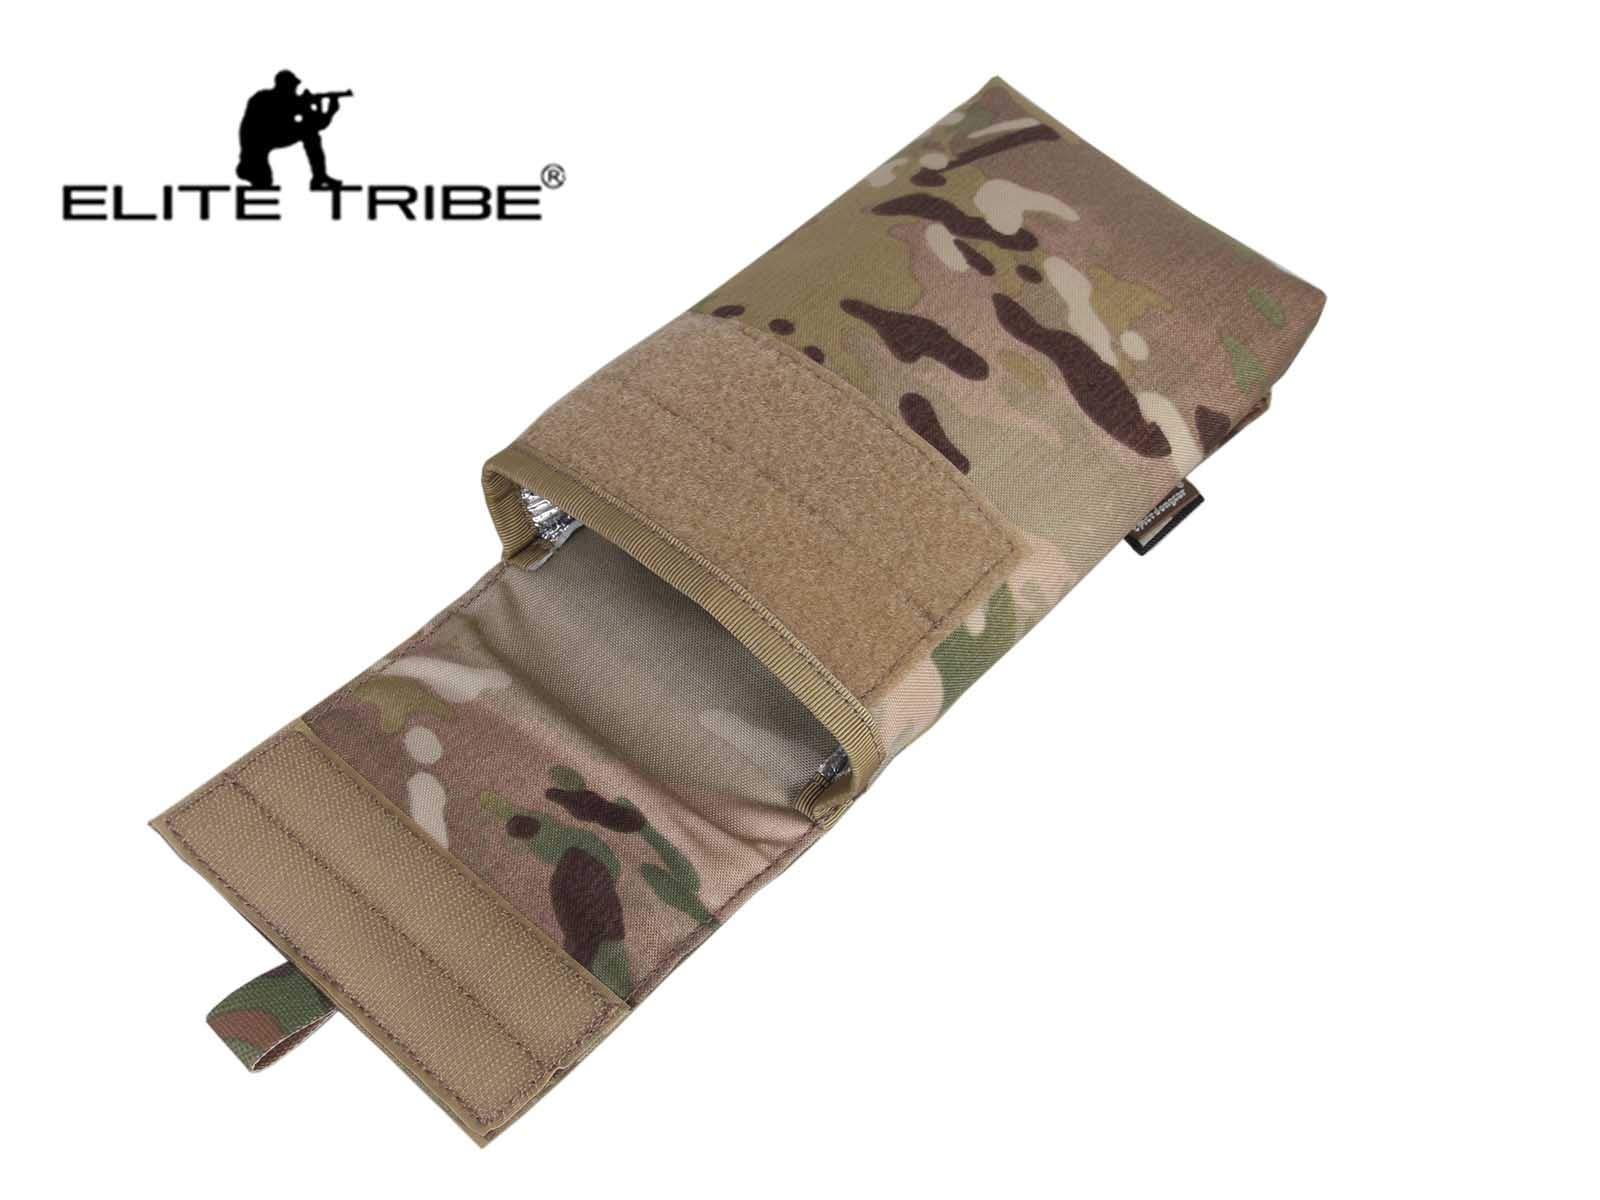 Elite Tribe Molle Pouch Hydration Pack Water Bag Cordura Tactical Pouch Army 27OZ Multicam